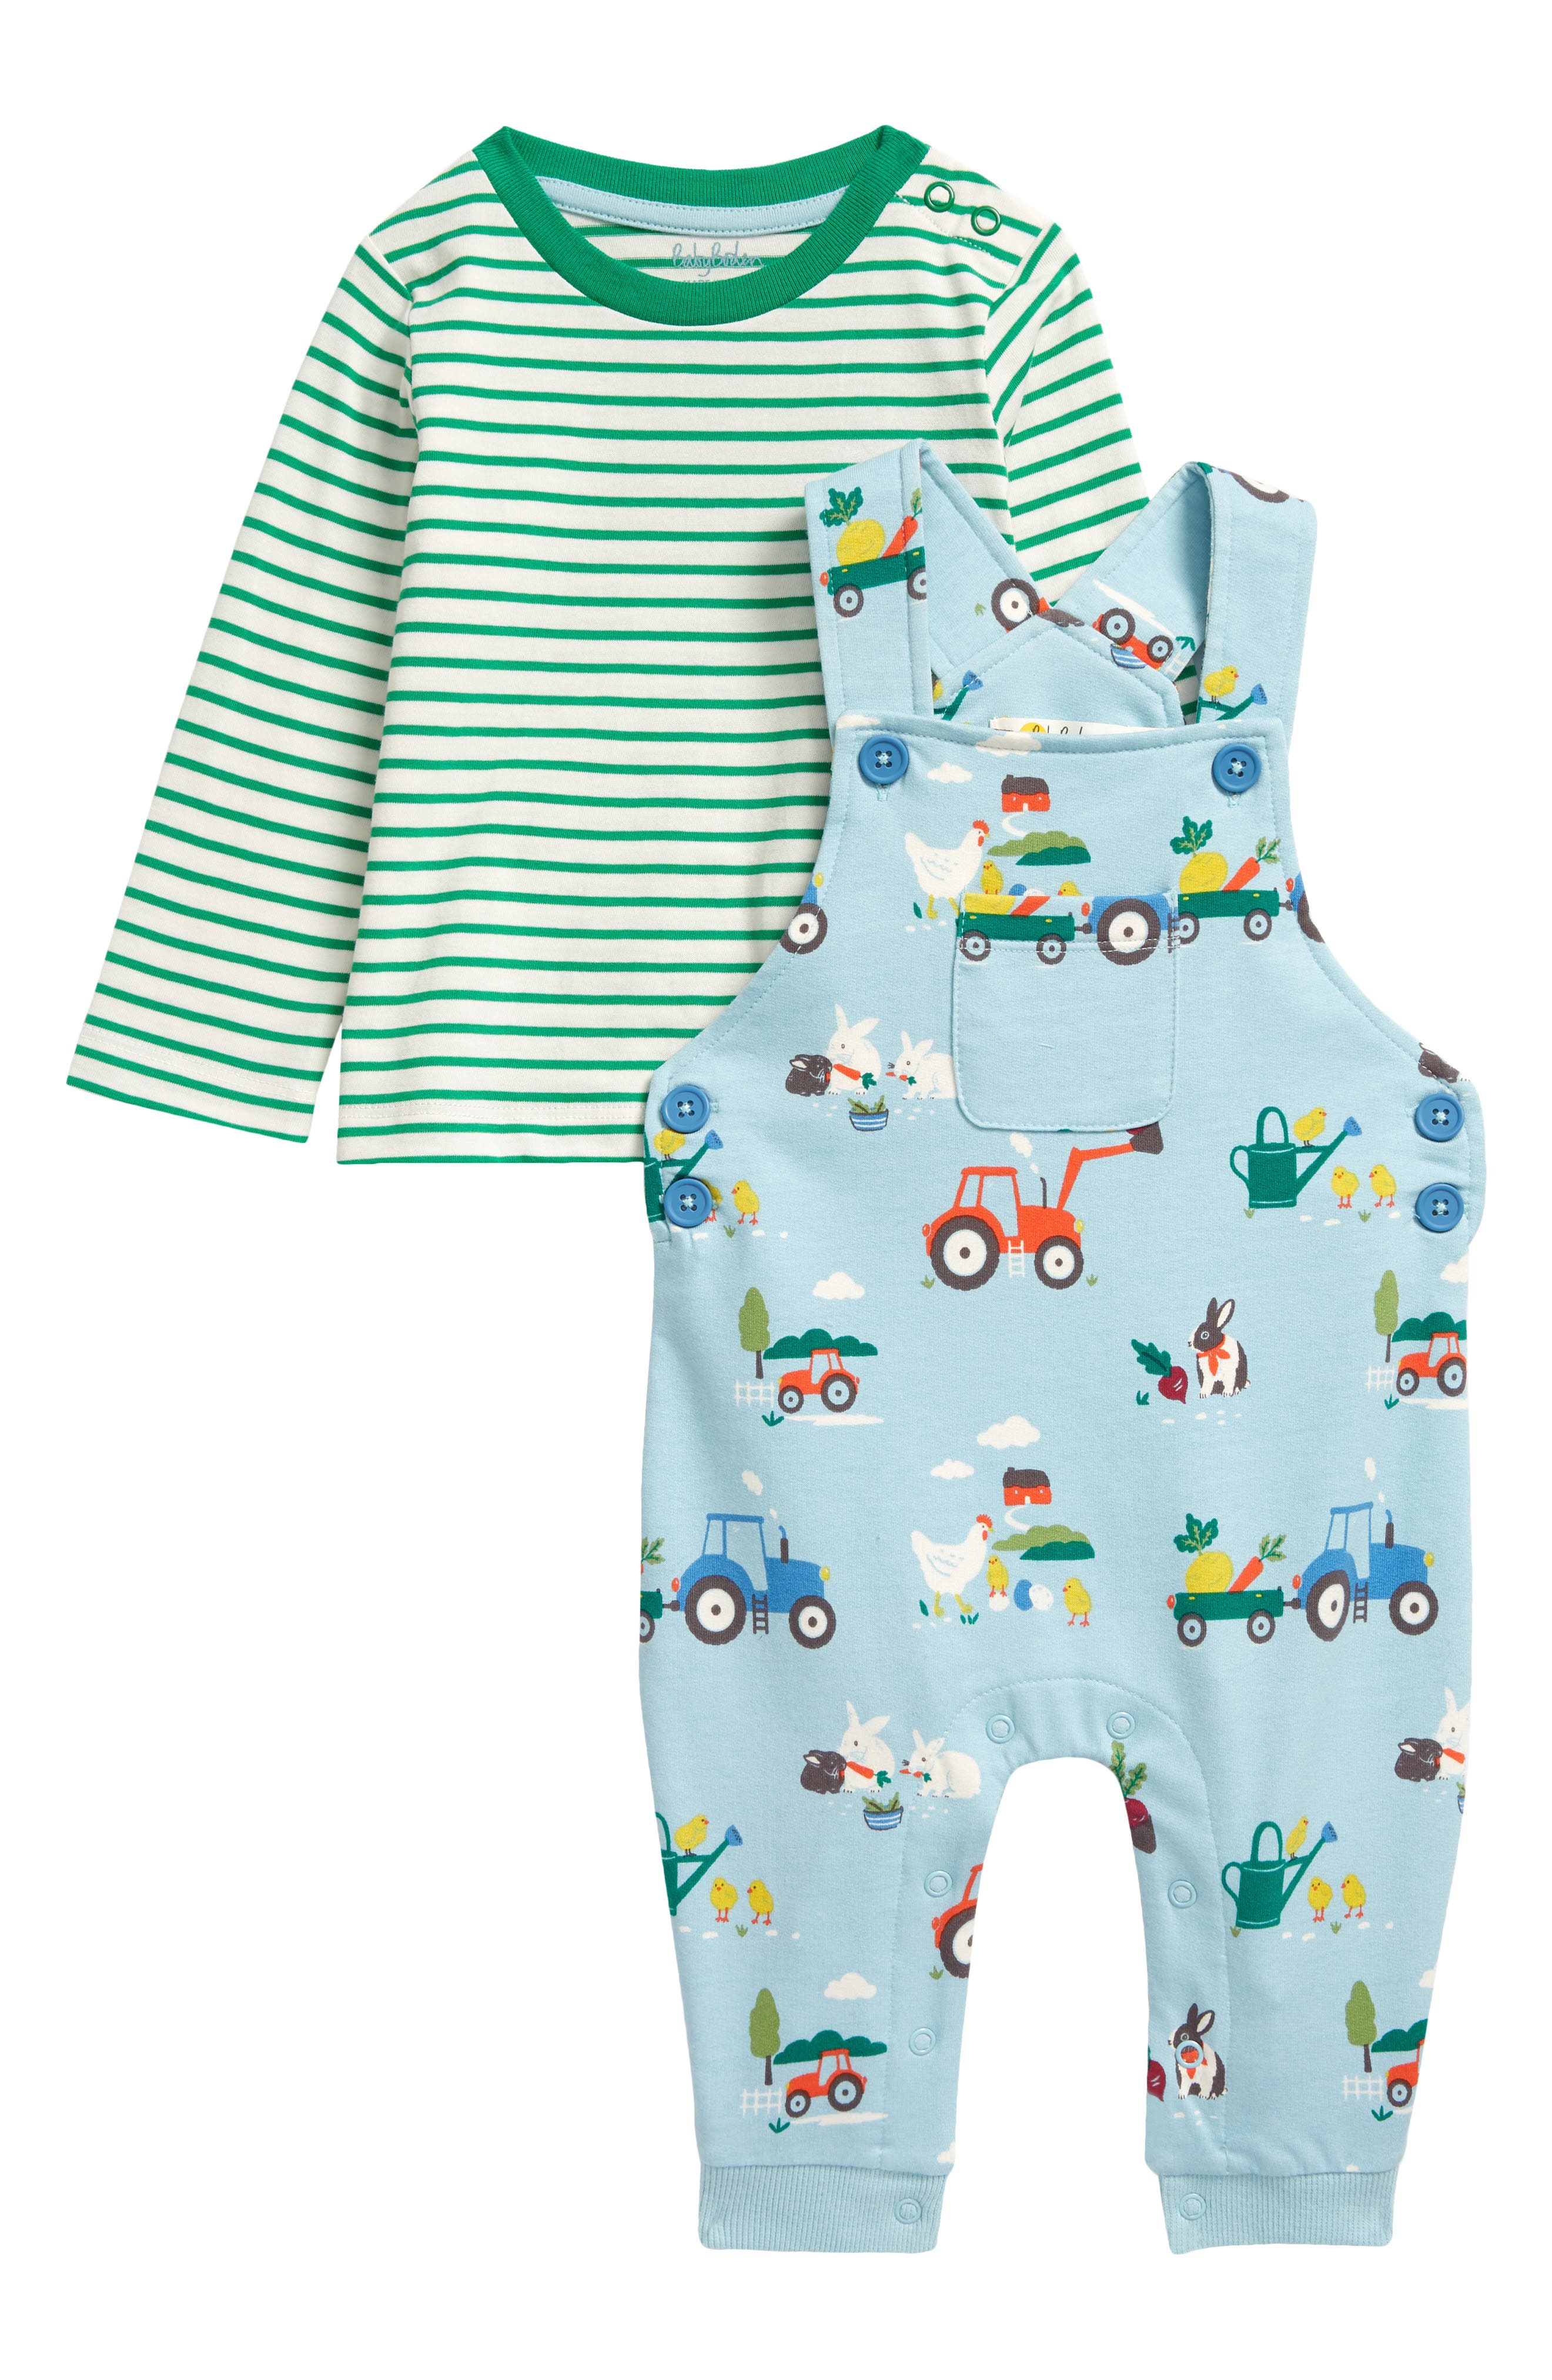 Baby Boden Beautiful Floral Super Soft Jersey Single Sleepsuit Romper NB-24Mnths